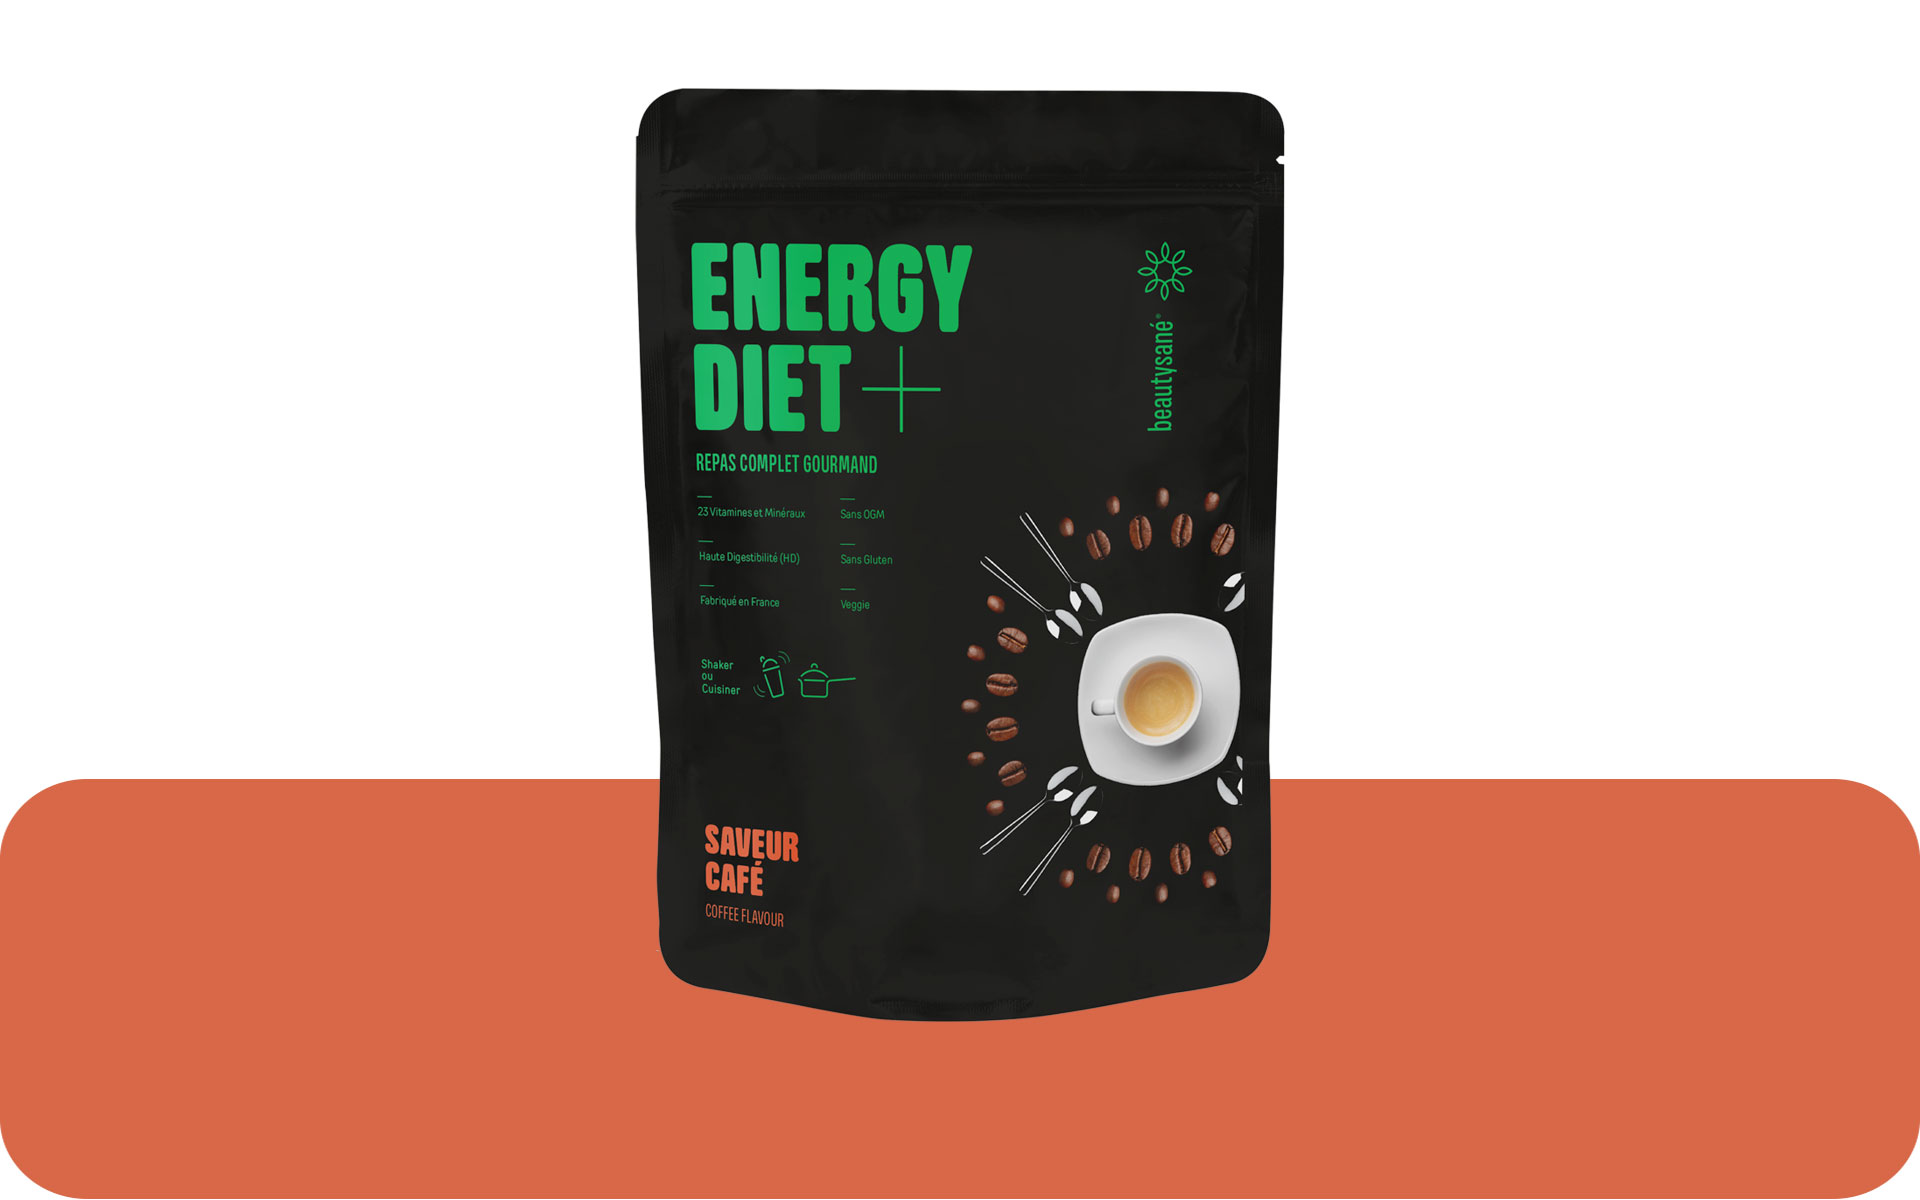 Energy Diet Plus sabor café